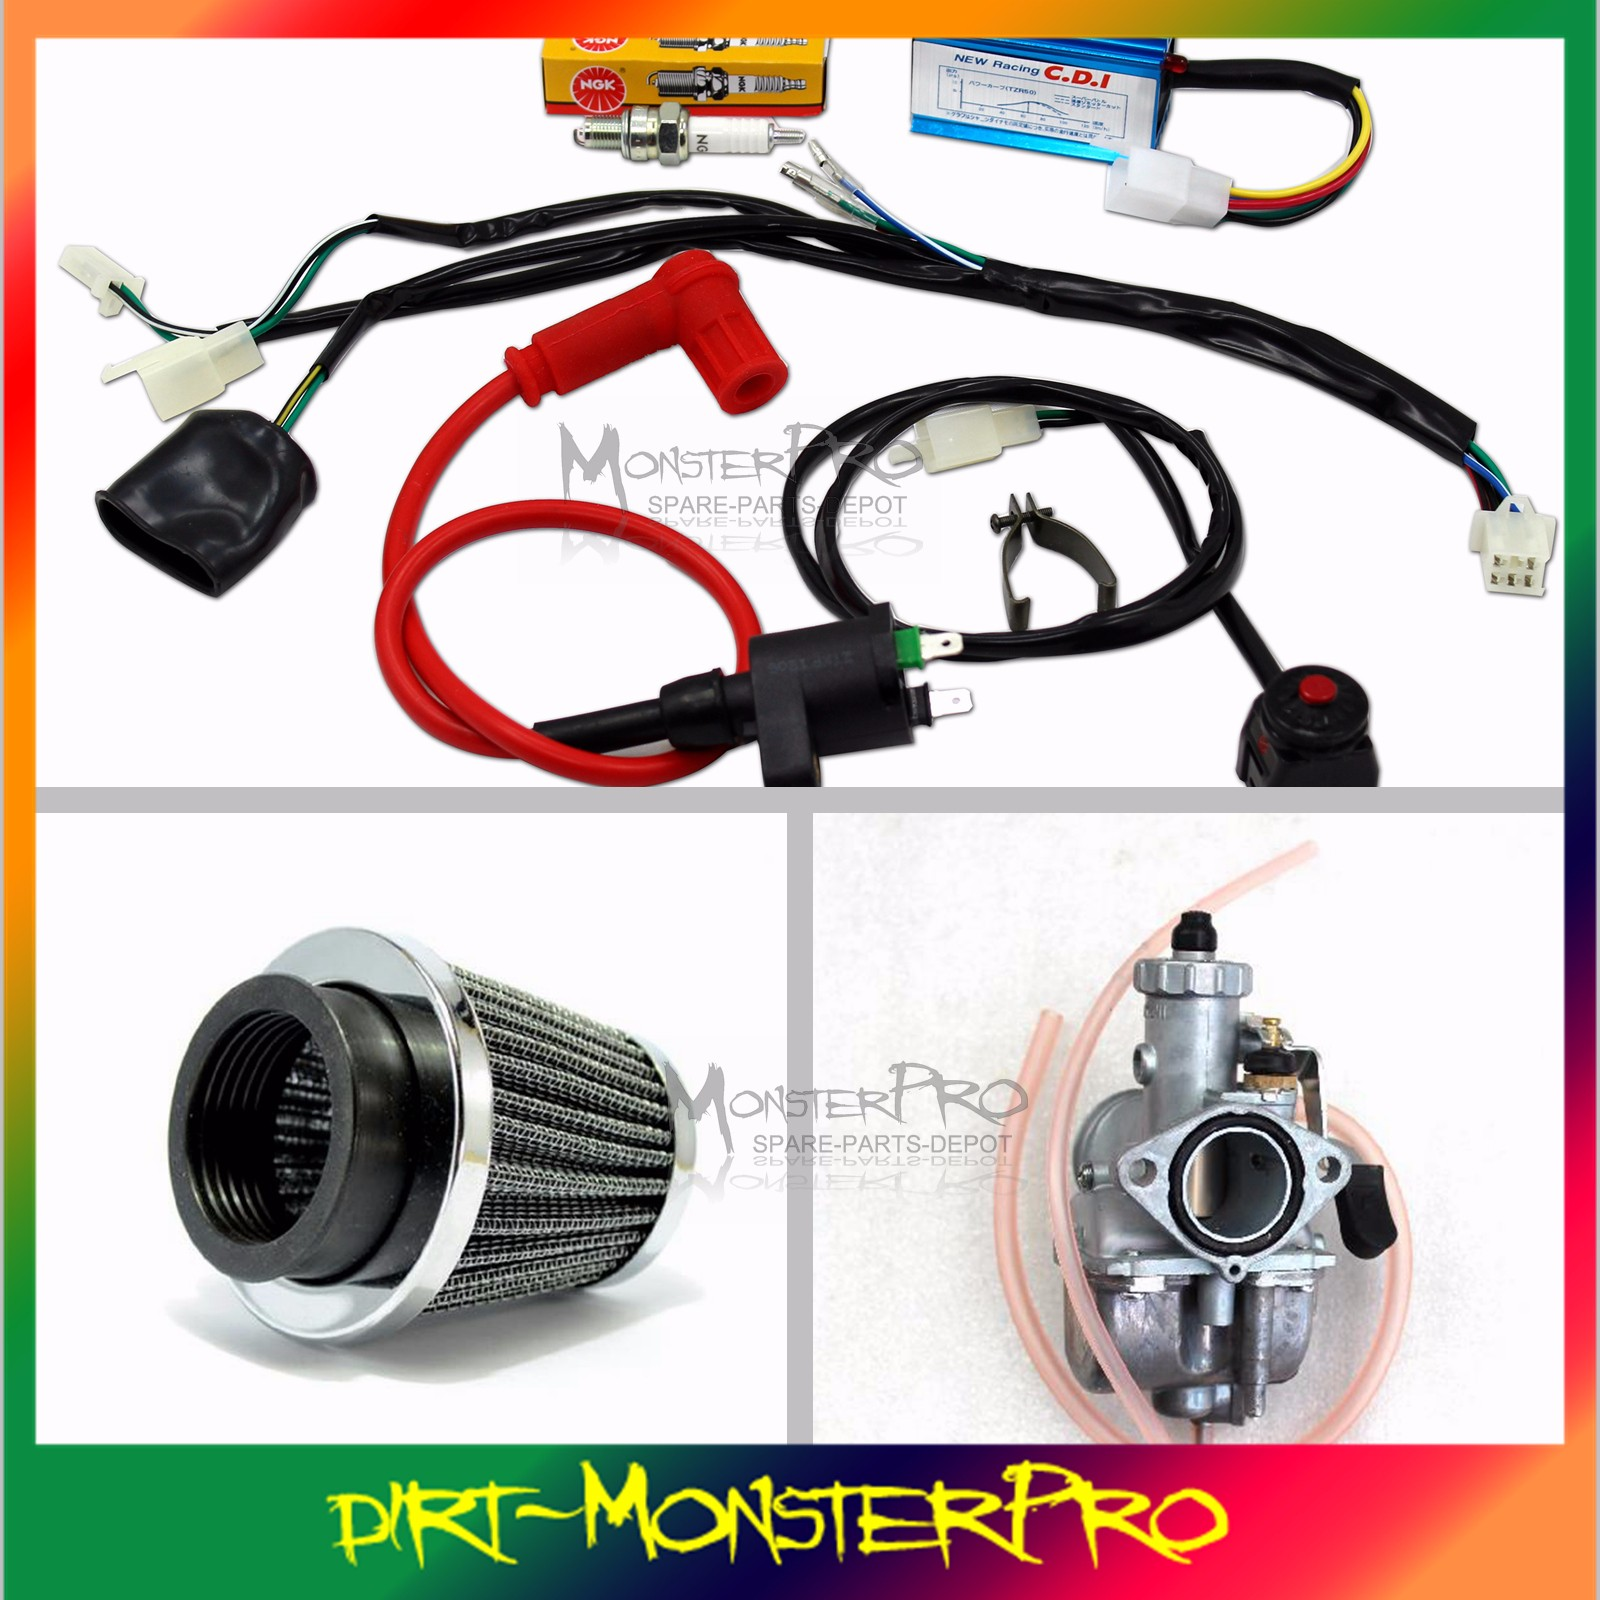 full wiring harness engine kit carby carburetor air filter ... 22r carburetor wiring diagram 80 carburetor wiring harness